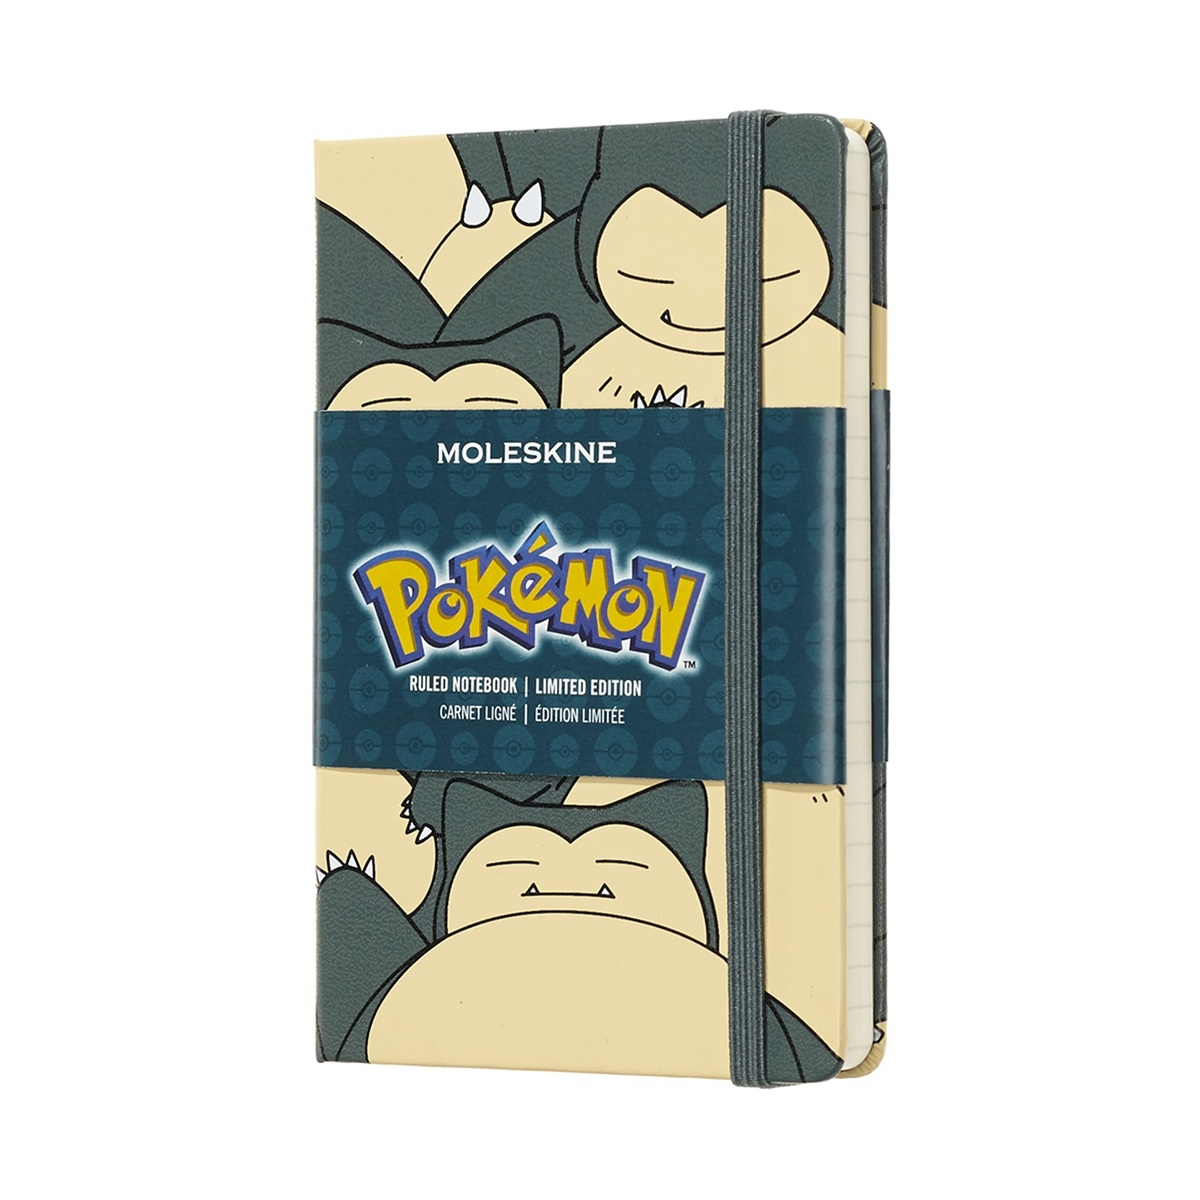 Pokémon Limited Edition Notebook -Snorlax, Pocket, Ruled, Hard Cover